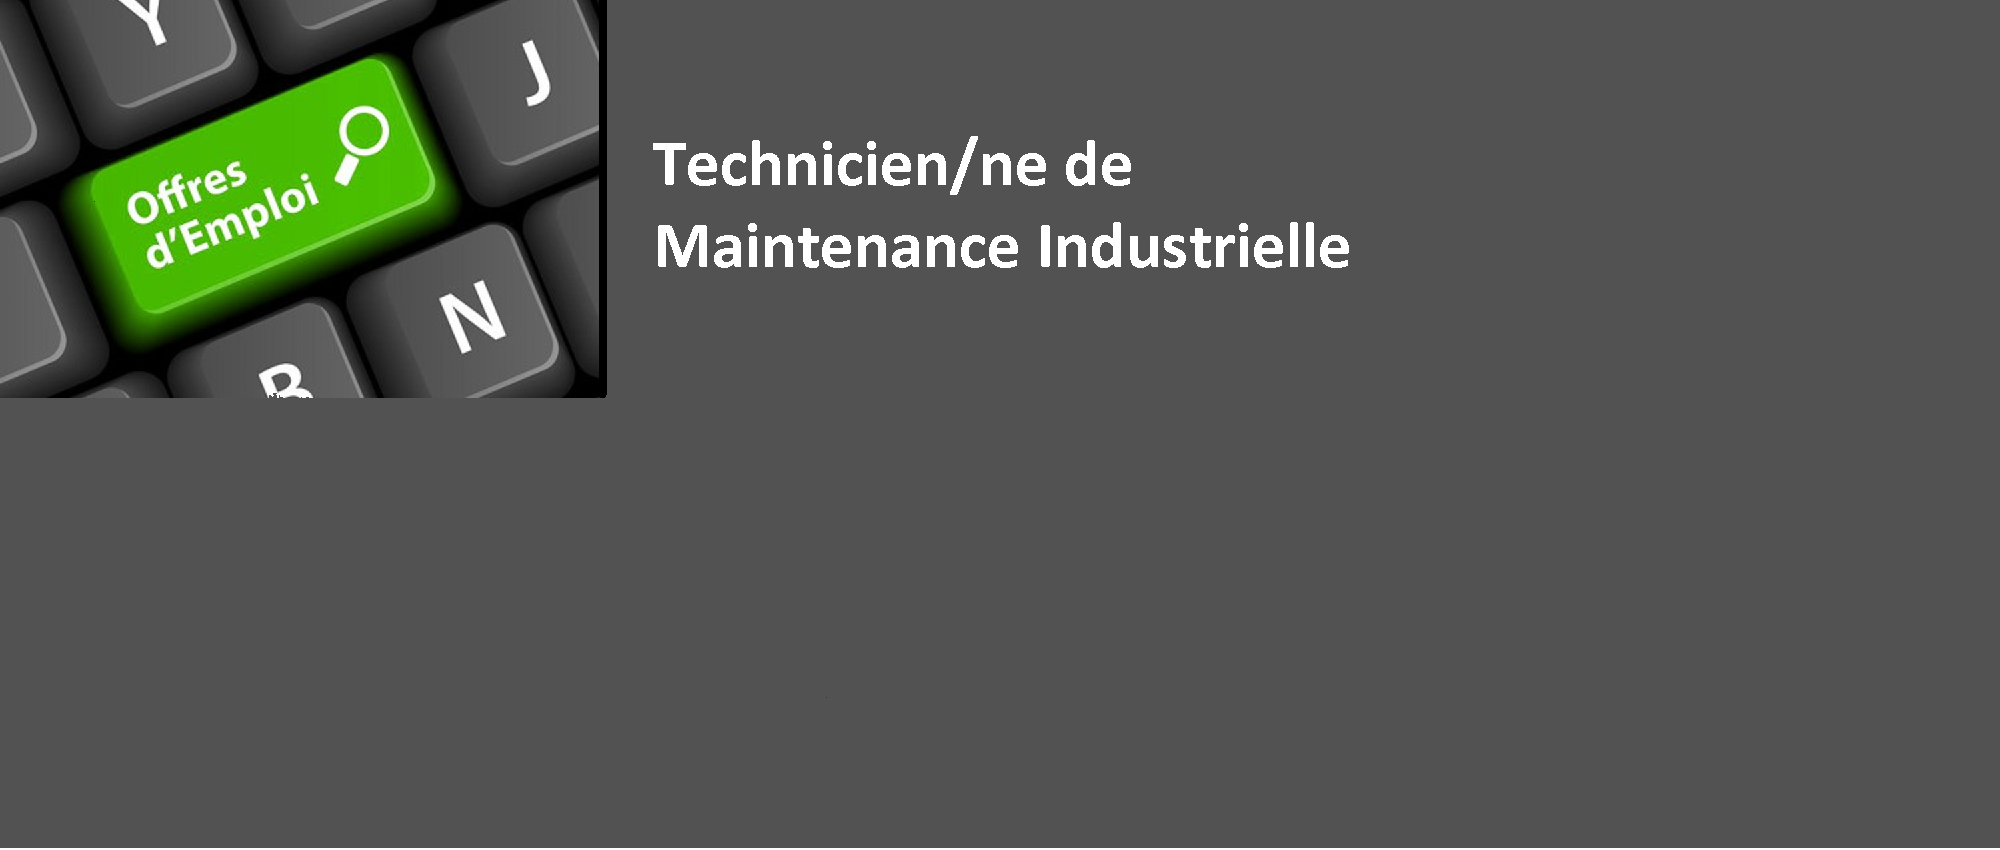 TECHNICIEN/NE DE MAINTENANCE INDUSTRIELLE